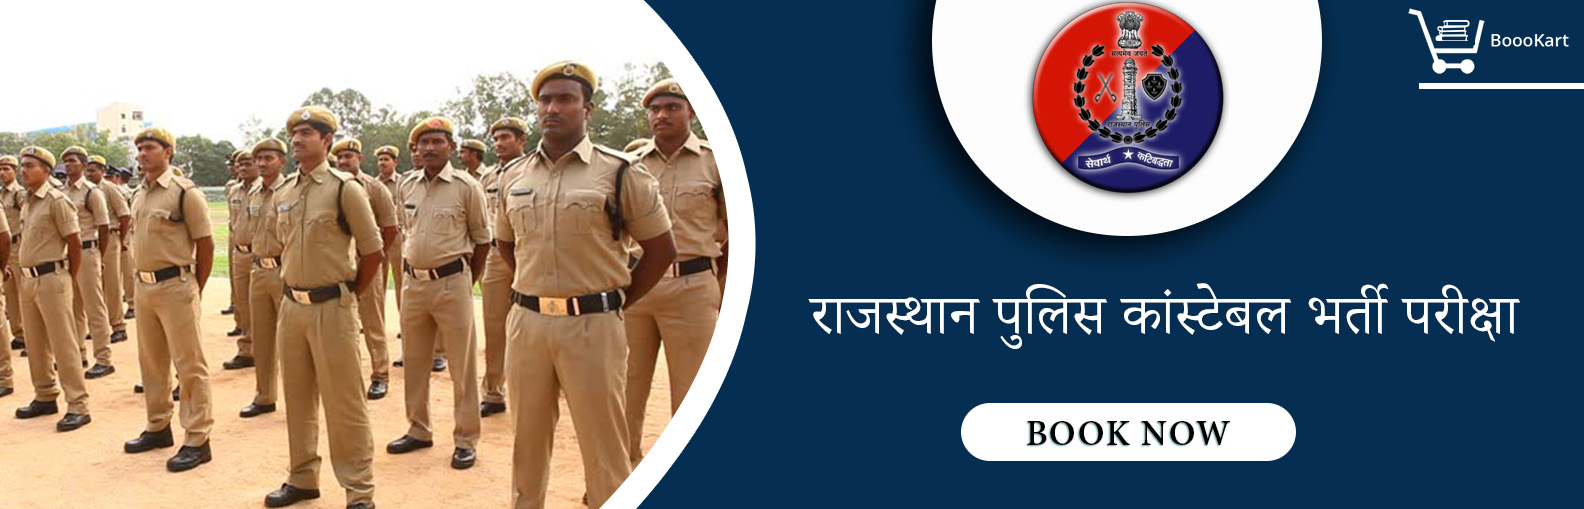 Rajasthan Police Constable Exam Recruitment book